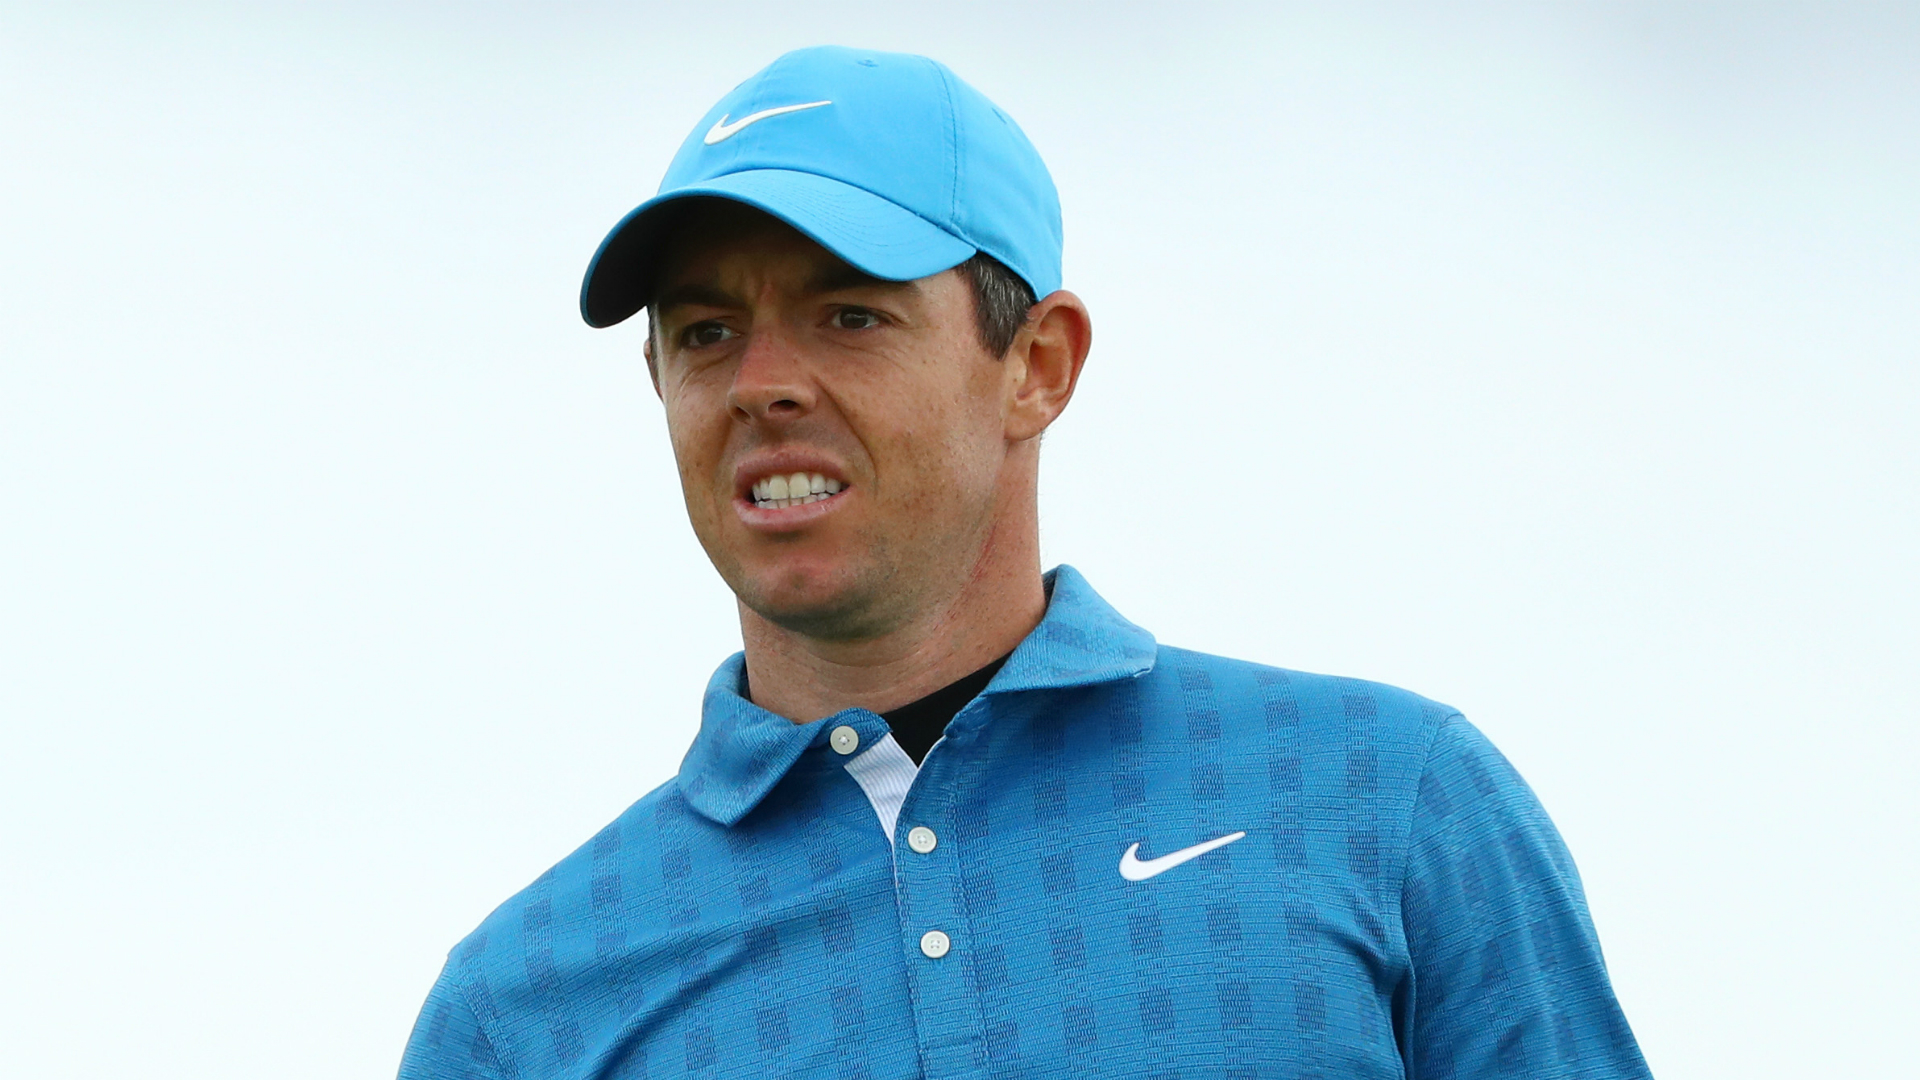 British Open 2019: Rory McIlroy disappointed by nightmare start at Royal Portrush